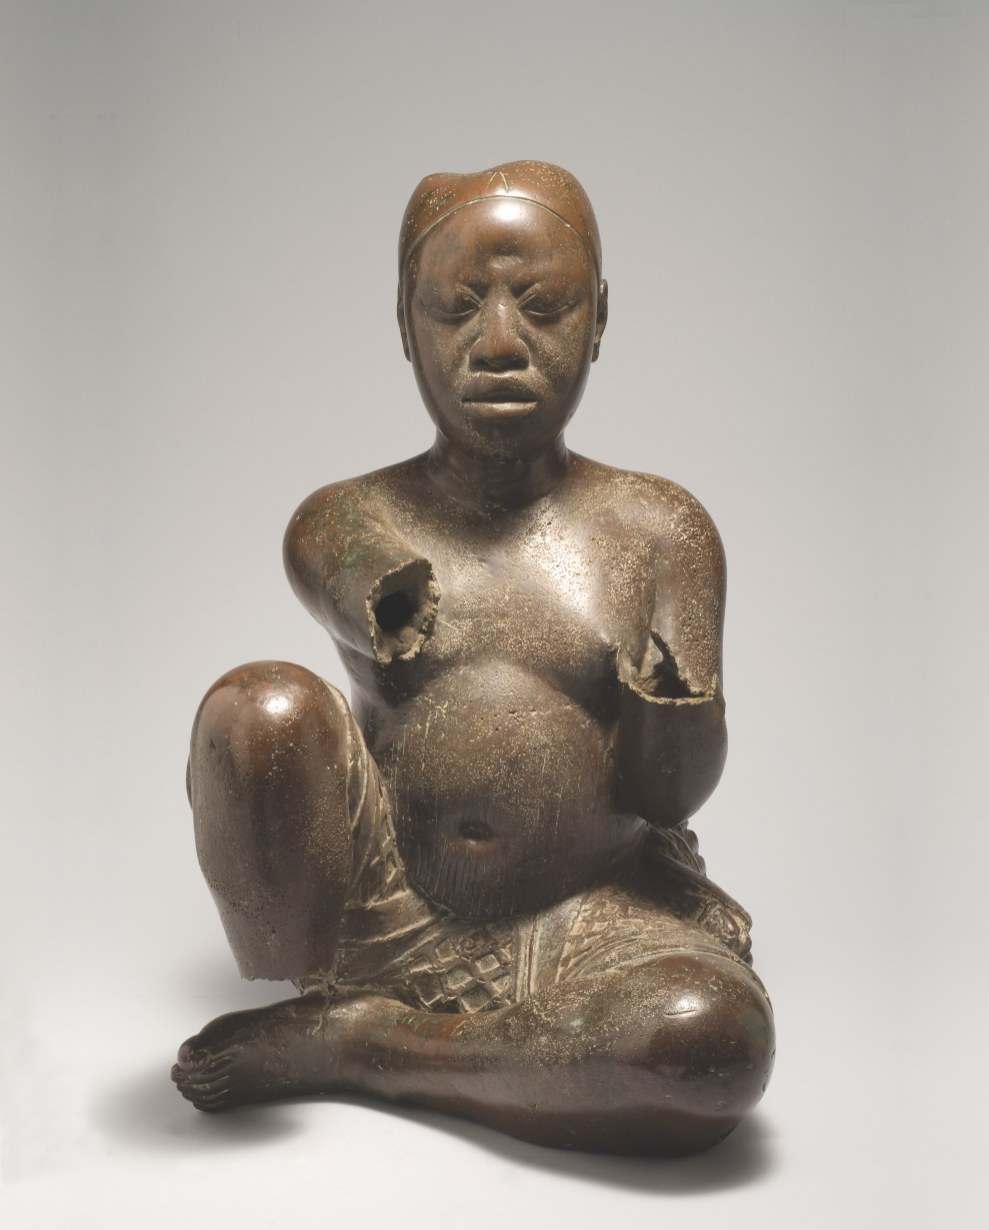 Seated figure, possibly from Ile-Ife, found at Tada, Nigeria, late 13th/14th century. Copper with traces of arsenic, lead, and tin, height 54 cm. National Commission for Museums and Monuments, Abuja, Nigeria, 79.R18. Photograph by Museum for African Art and The Fundación Marcelino Botín/ Karin L. Wilis The style and the extraordinarily thin casting of this naturalistic figure point to its likely creation at Ife, the royal capital of a powerful kingdom. In the early 20th century the figure was part of the ritual life of Tada, a small village on the banks of the Niger River 120 miles north of Ife. During the medieval period, Tada's location would have been of strategic importance to Ife, connecting it with long-distance trade. Analysis of the raw copper from which the statue is made suggests that it might have originated in France, traveling along these very trade routes to Ife, where it was cast.